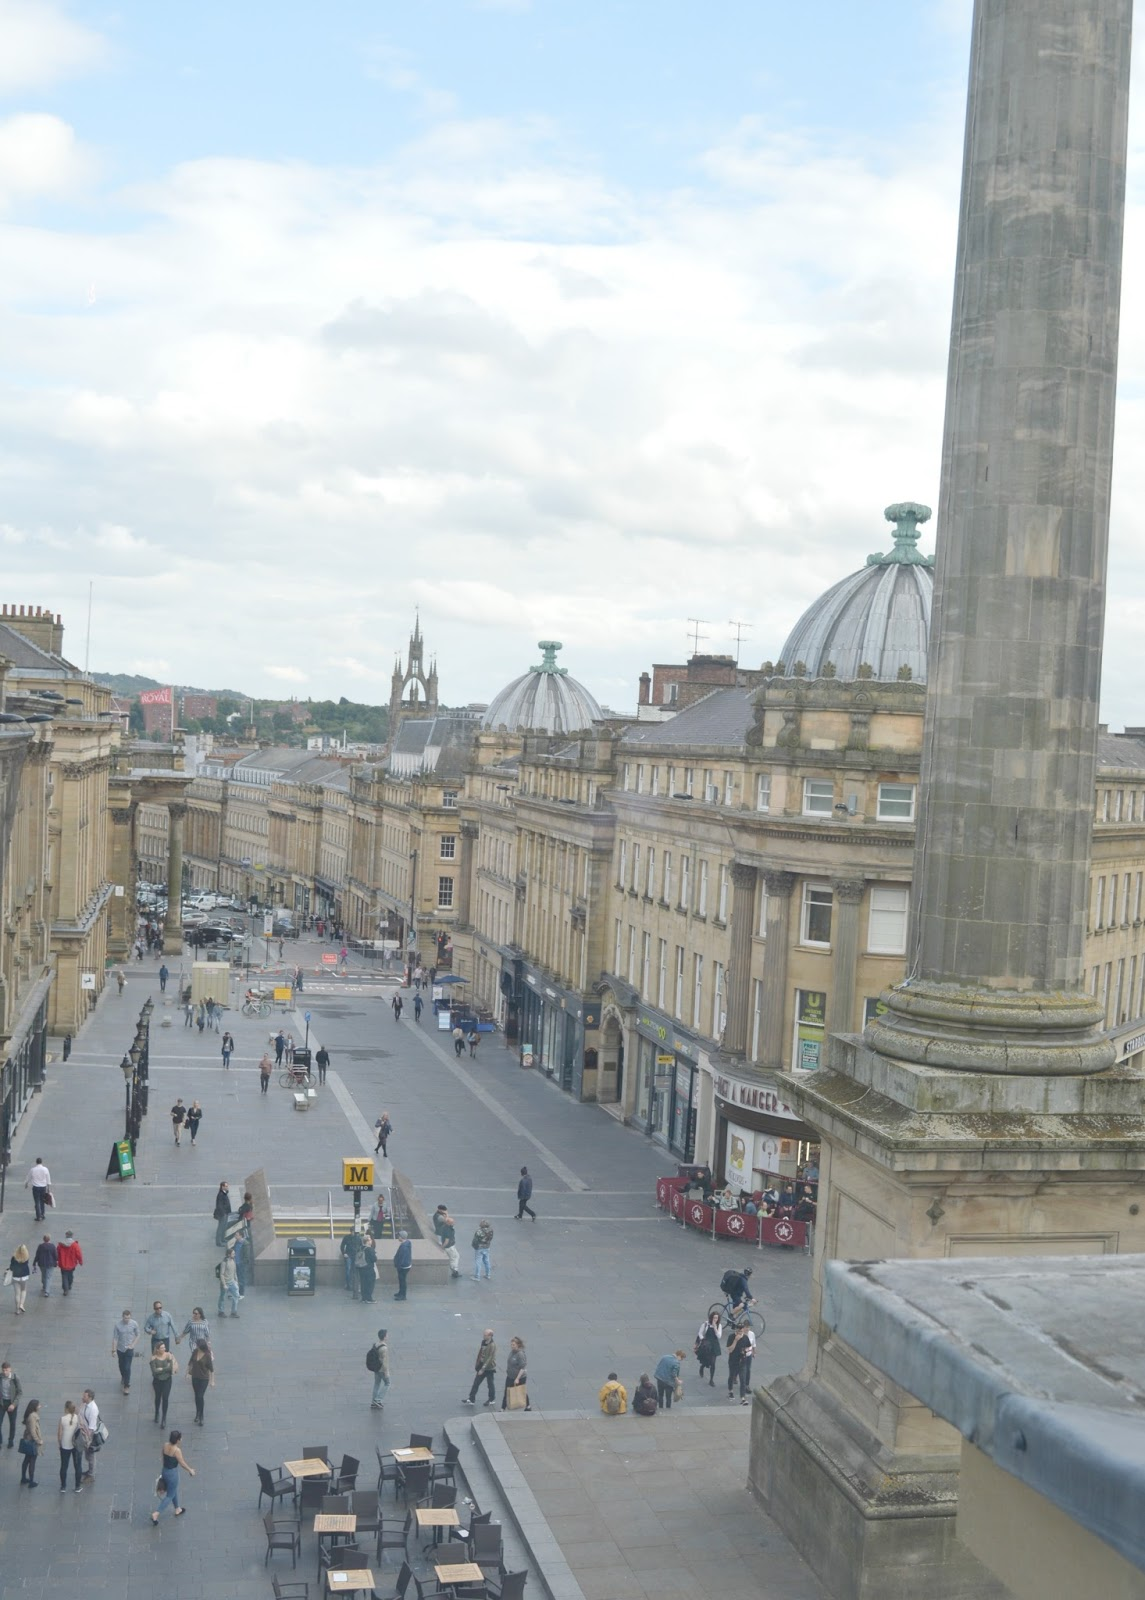 Climb Grey's Monument - The Botanist